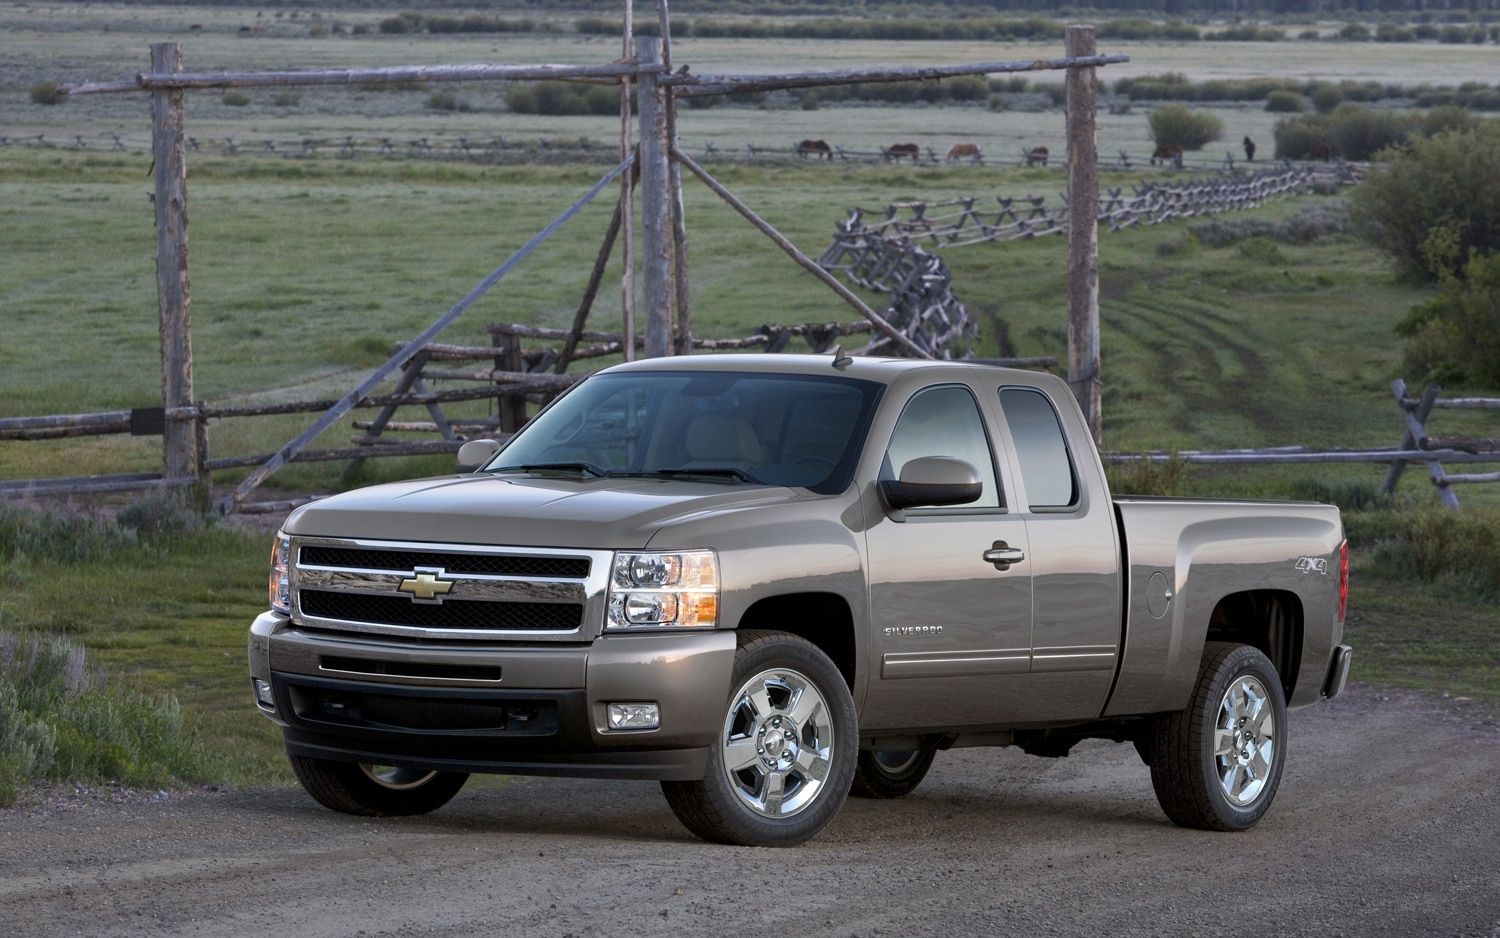 2011 Chevrolet Silverado Ltz Front Three Quarter